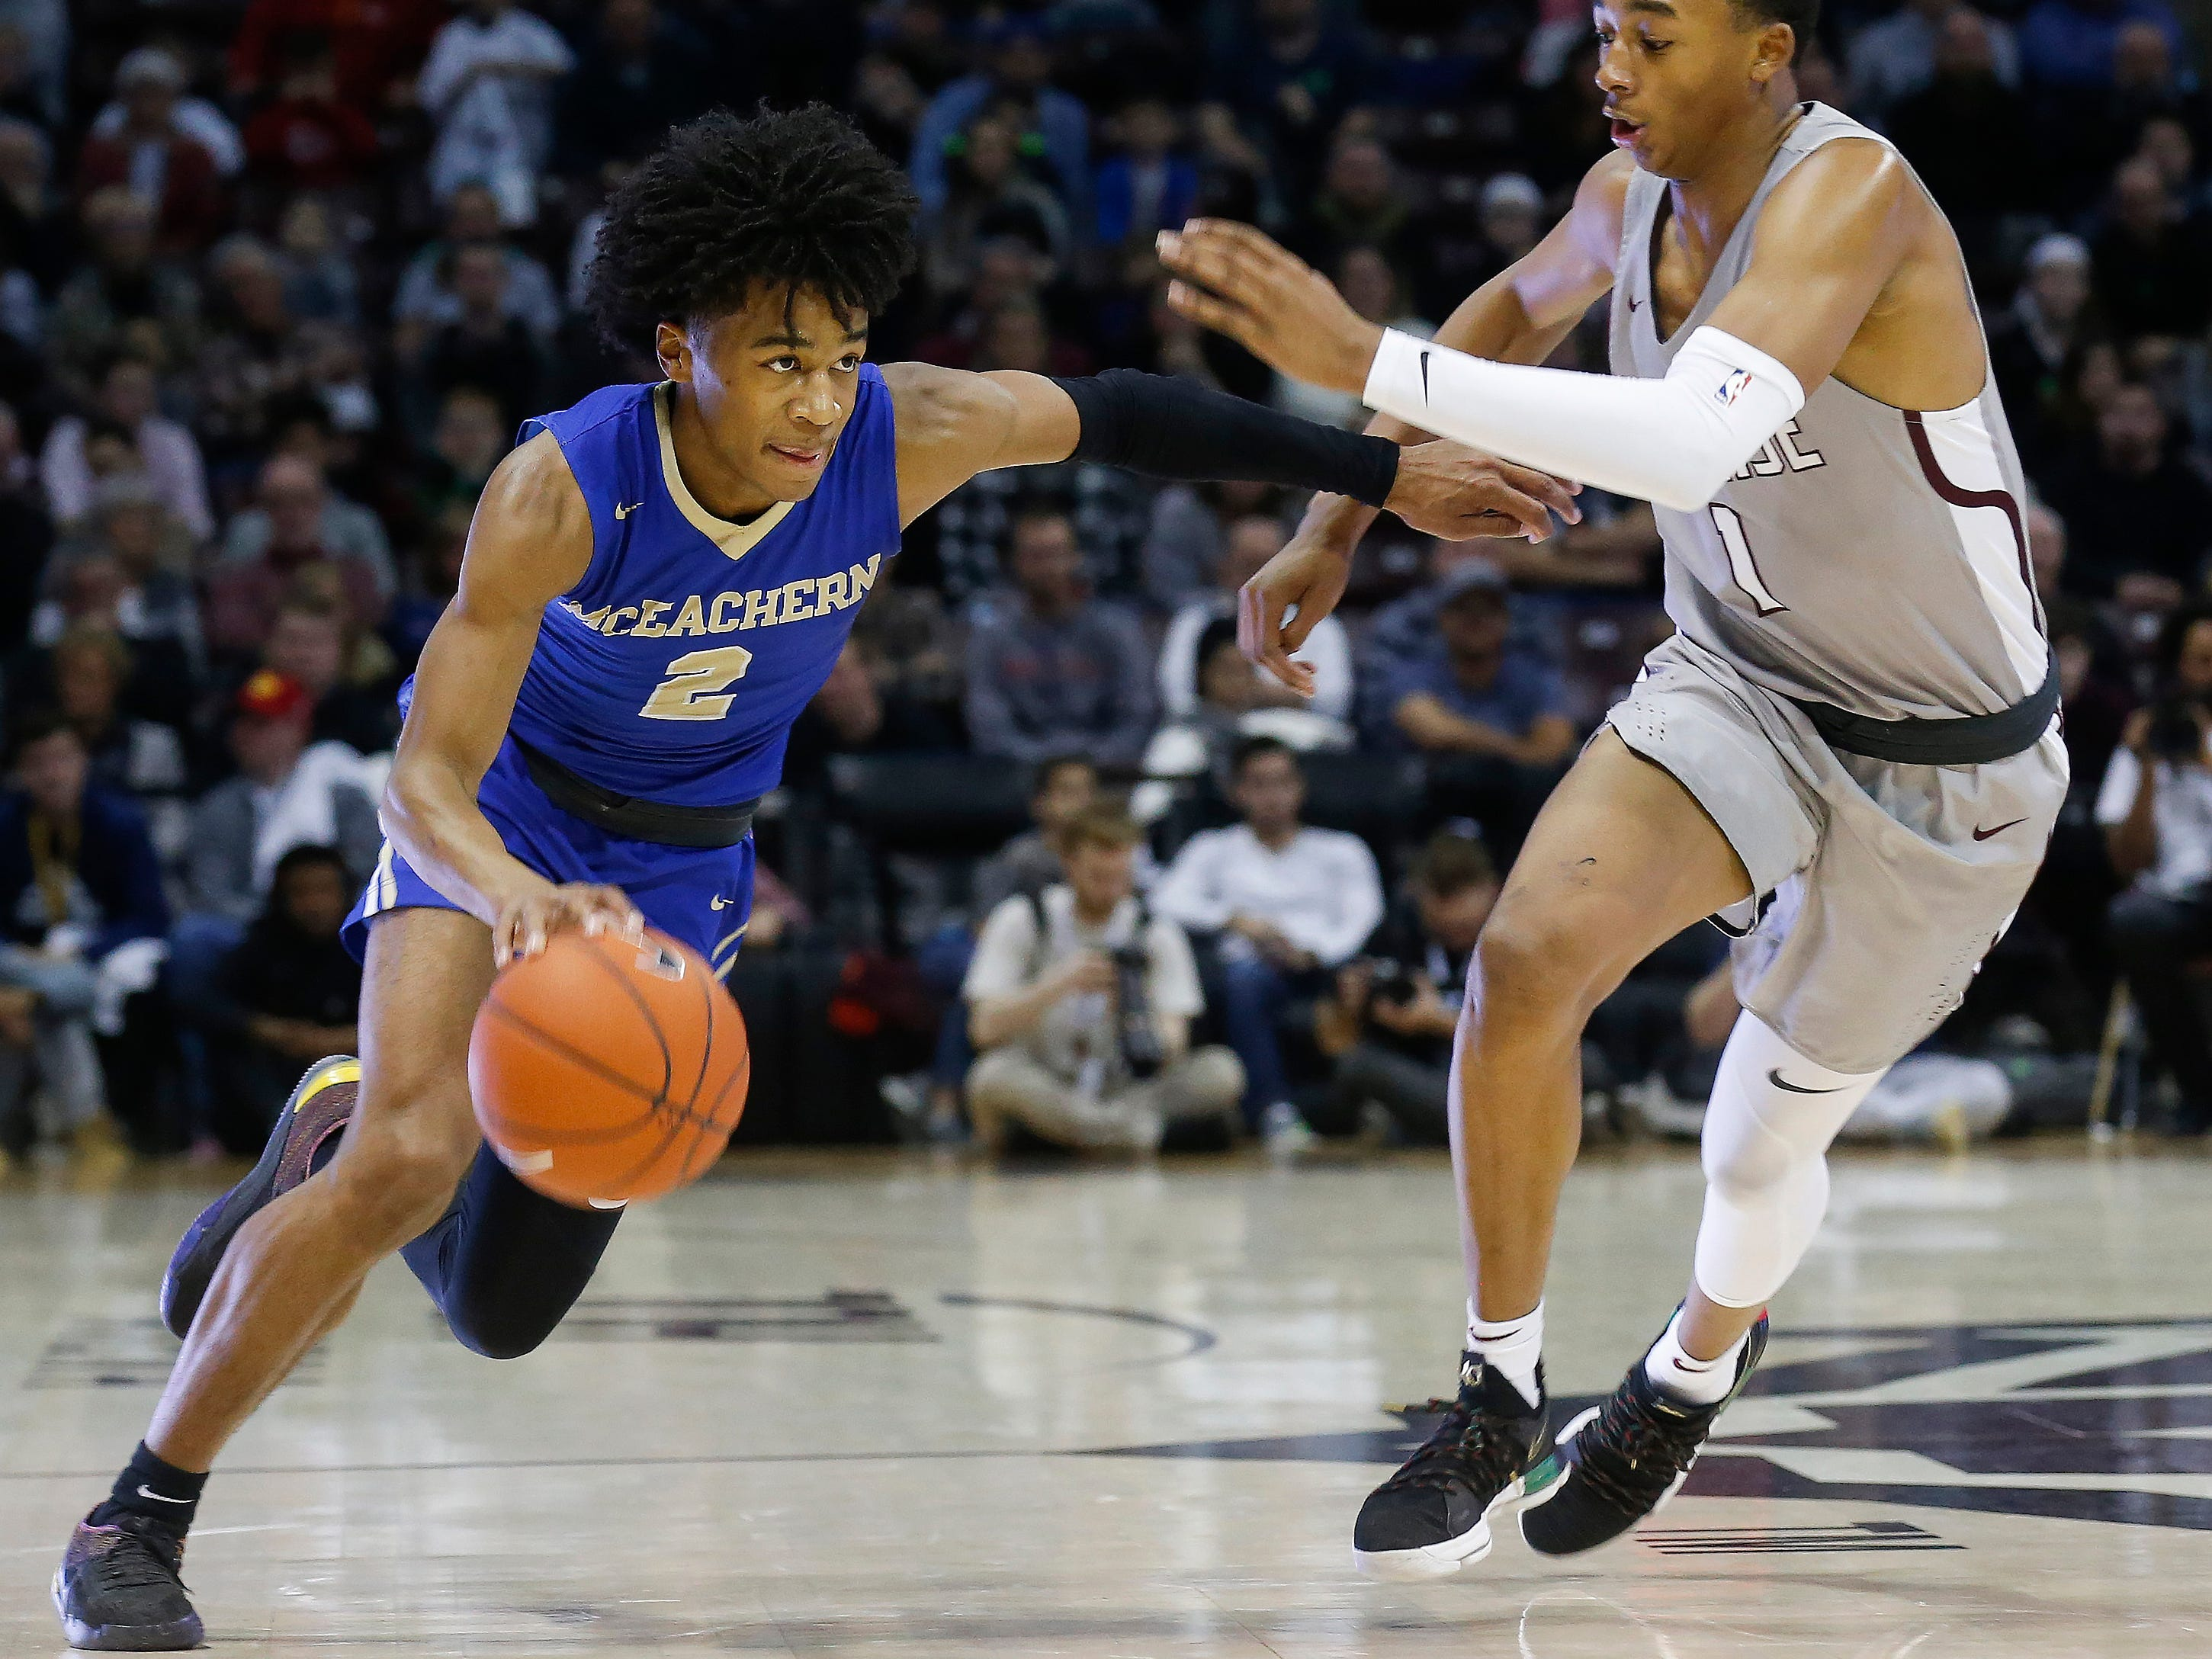 Sharife Cooper, of McEachern, drives to the net during the championship game against Sunrise Christian Academy at the Bass Pro Shops Tournament of Champions at JQH Arena on Saturday, Jan. 19, 2019.